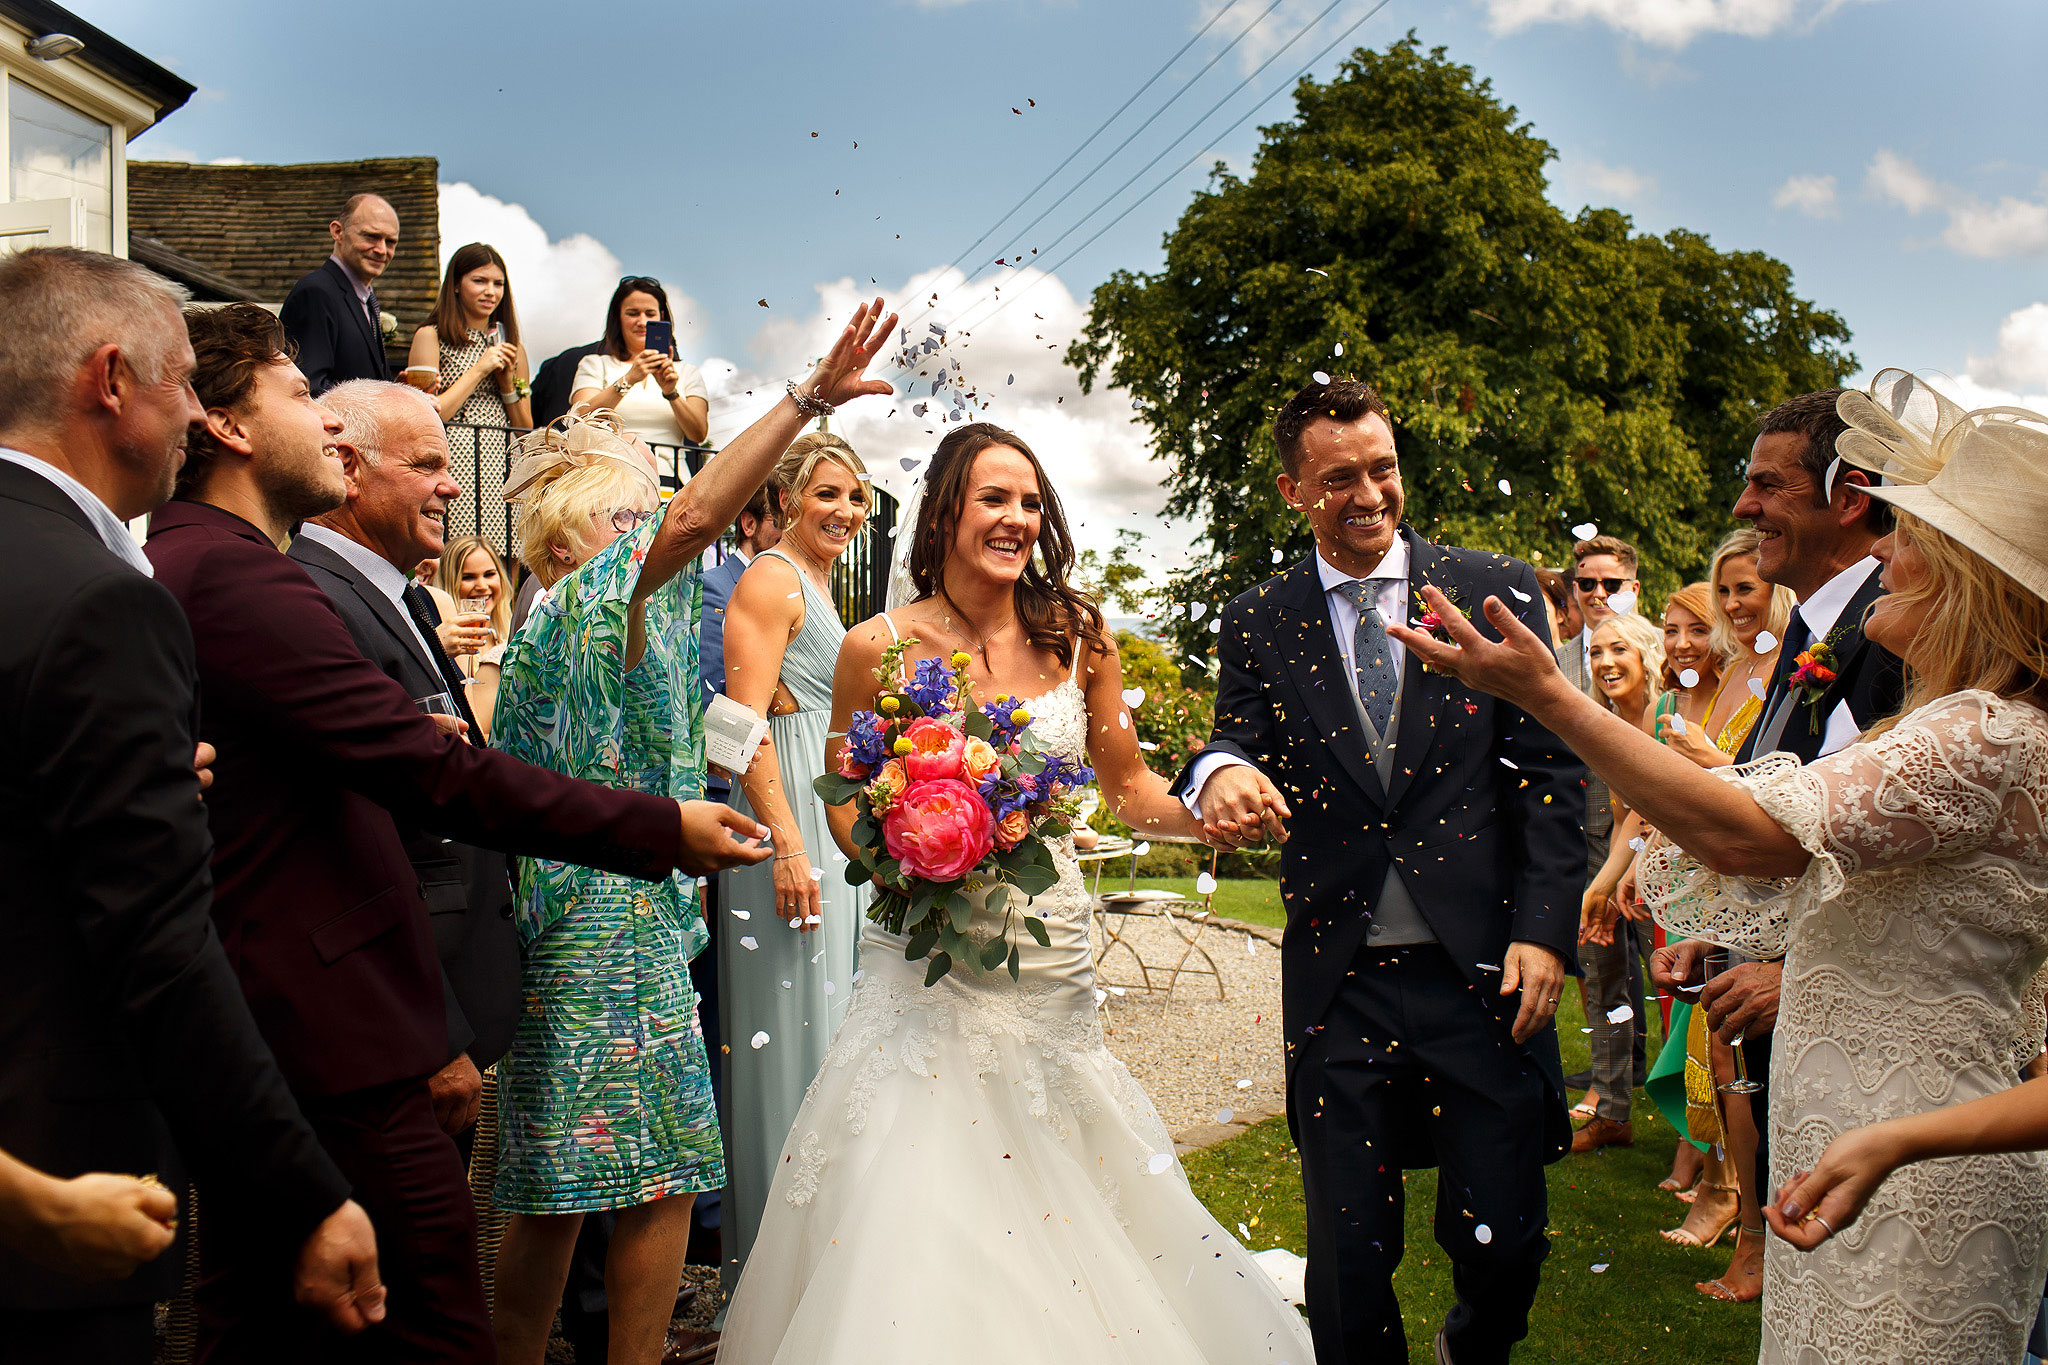 Bride and groom walking through confetti throwing in the garden at Shireburn Arms